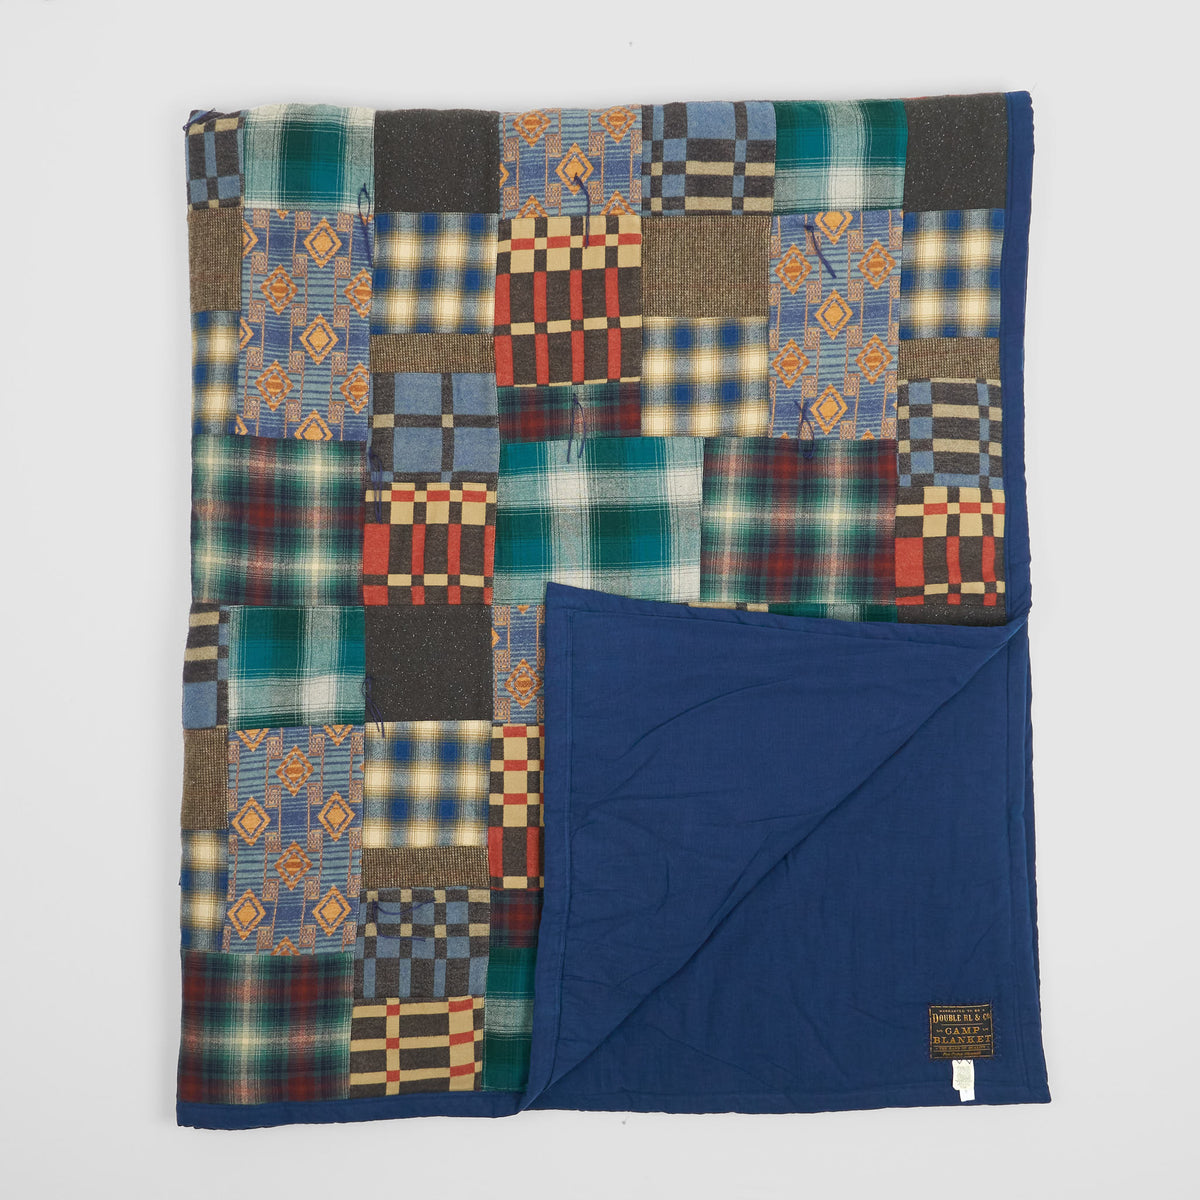 Double RL Quilted Patchwork Blanket Limited Edition